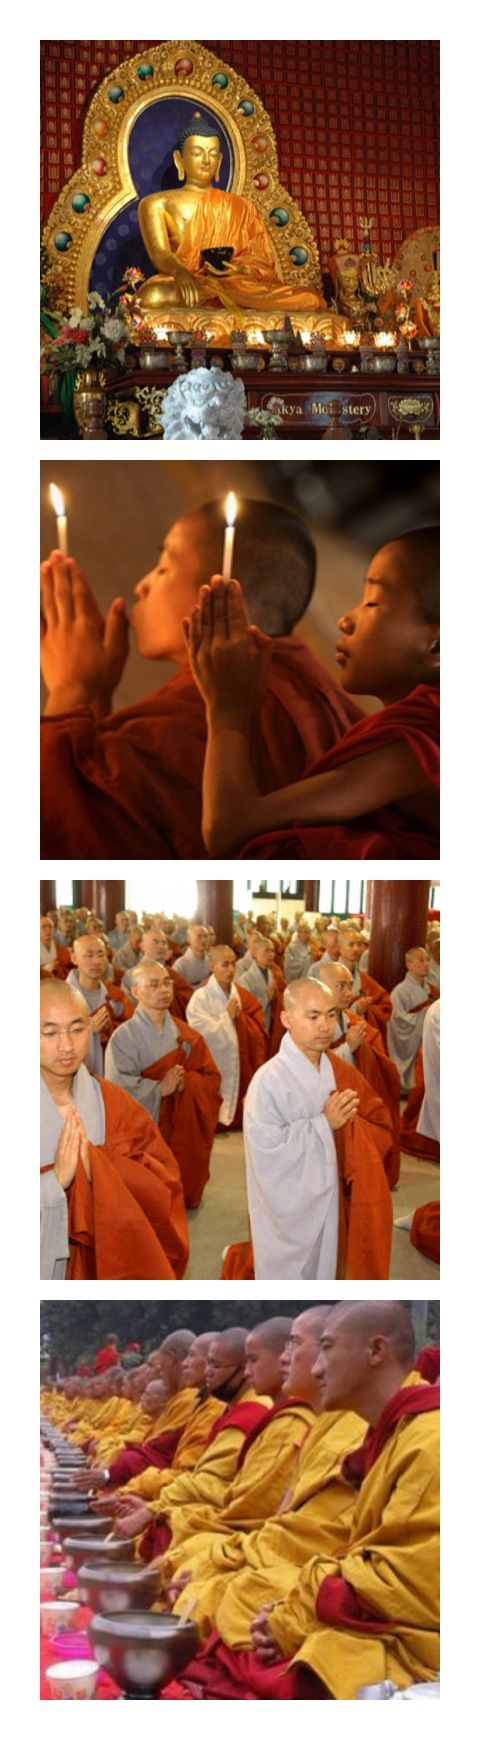 buddhism religion represented by the many groups (especially in Asia) that profess various forms of the Buddhist doctrine and that venerate Buddha